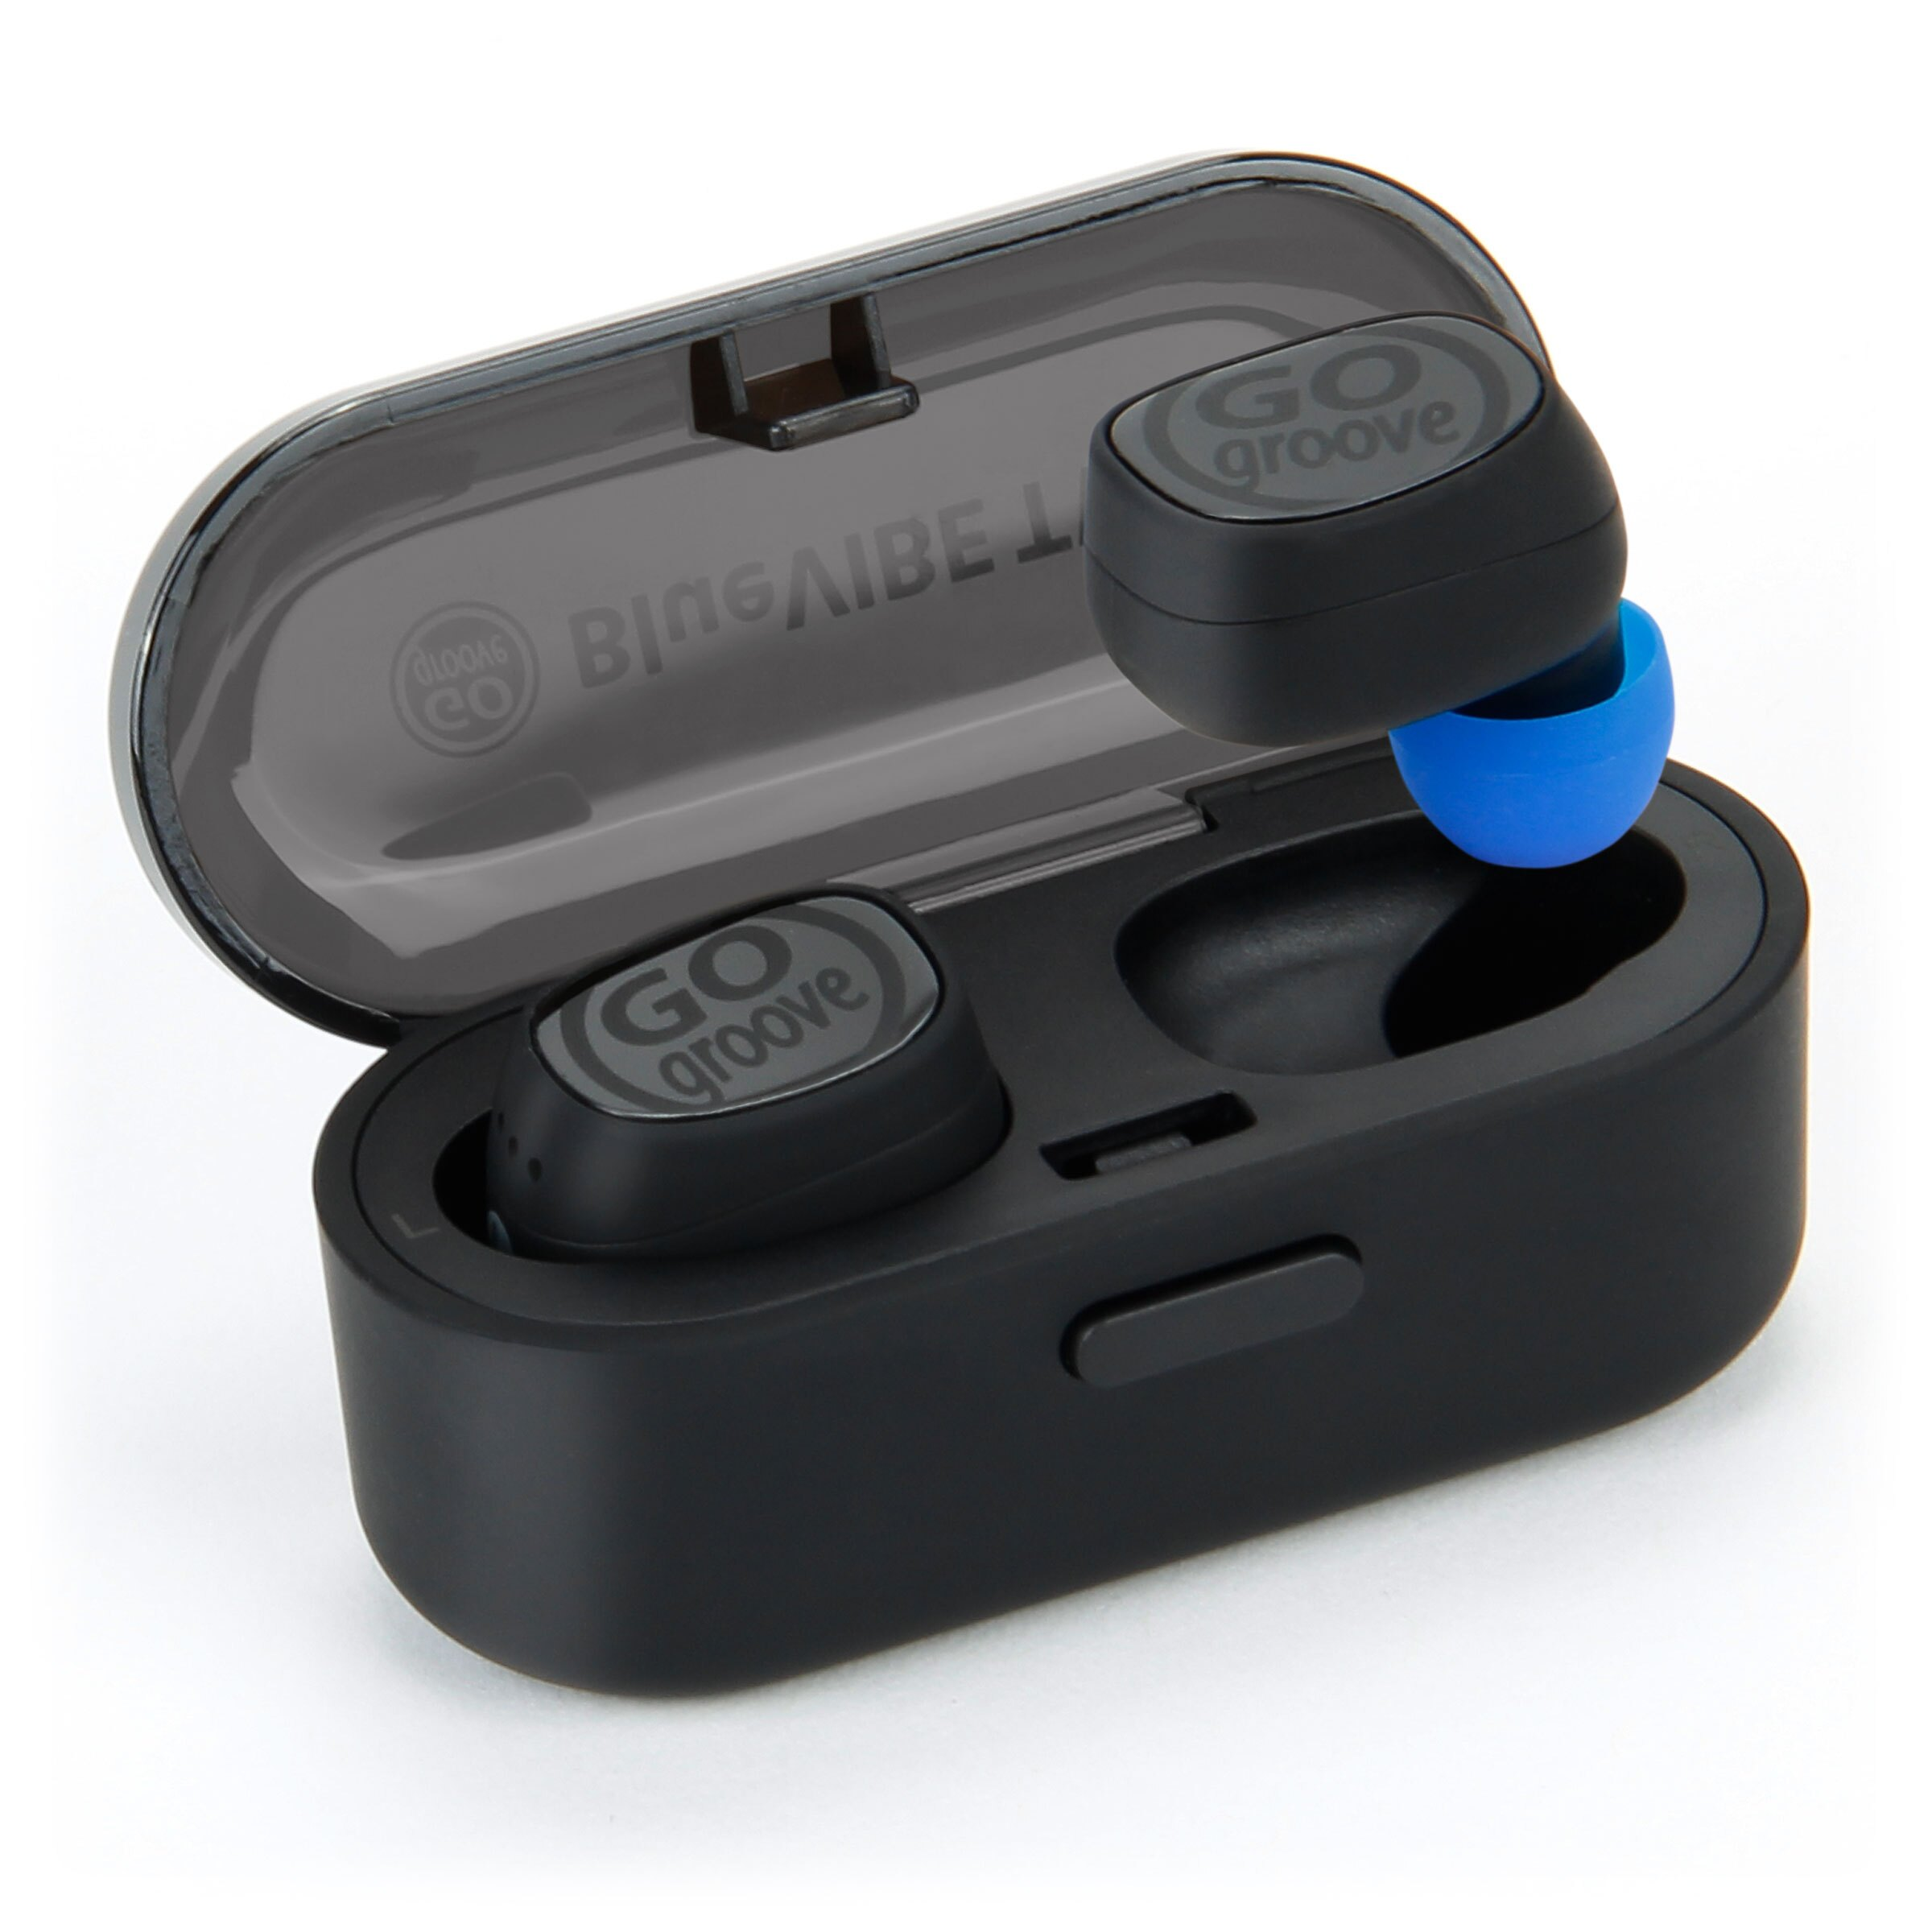 241ba5cb833 Wireless Earbuds Bluetooth Headphones by GOgroove - BlueVIBE TWS Mini Bluetooth  Headset w/ HD Mic